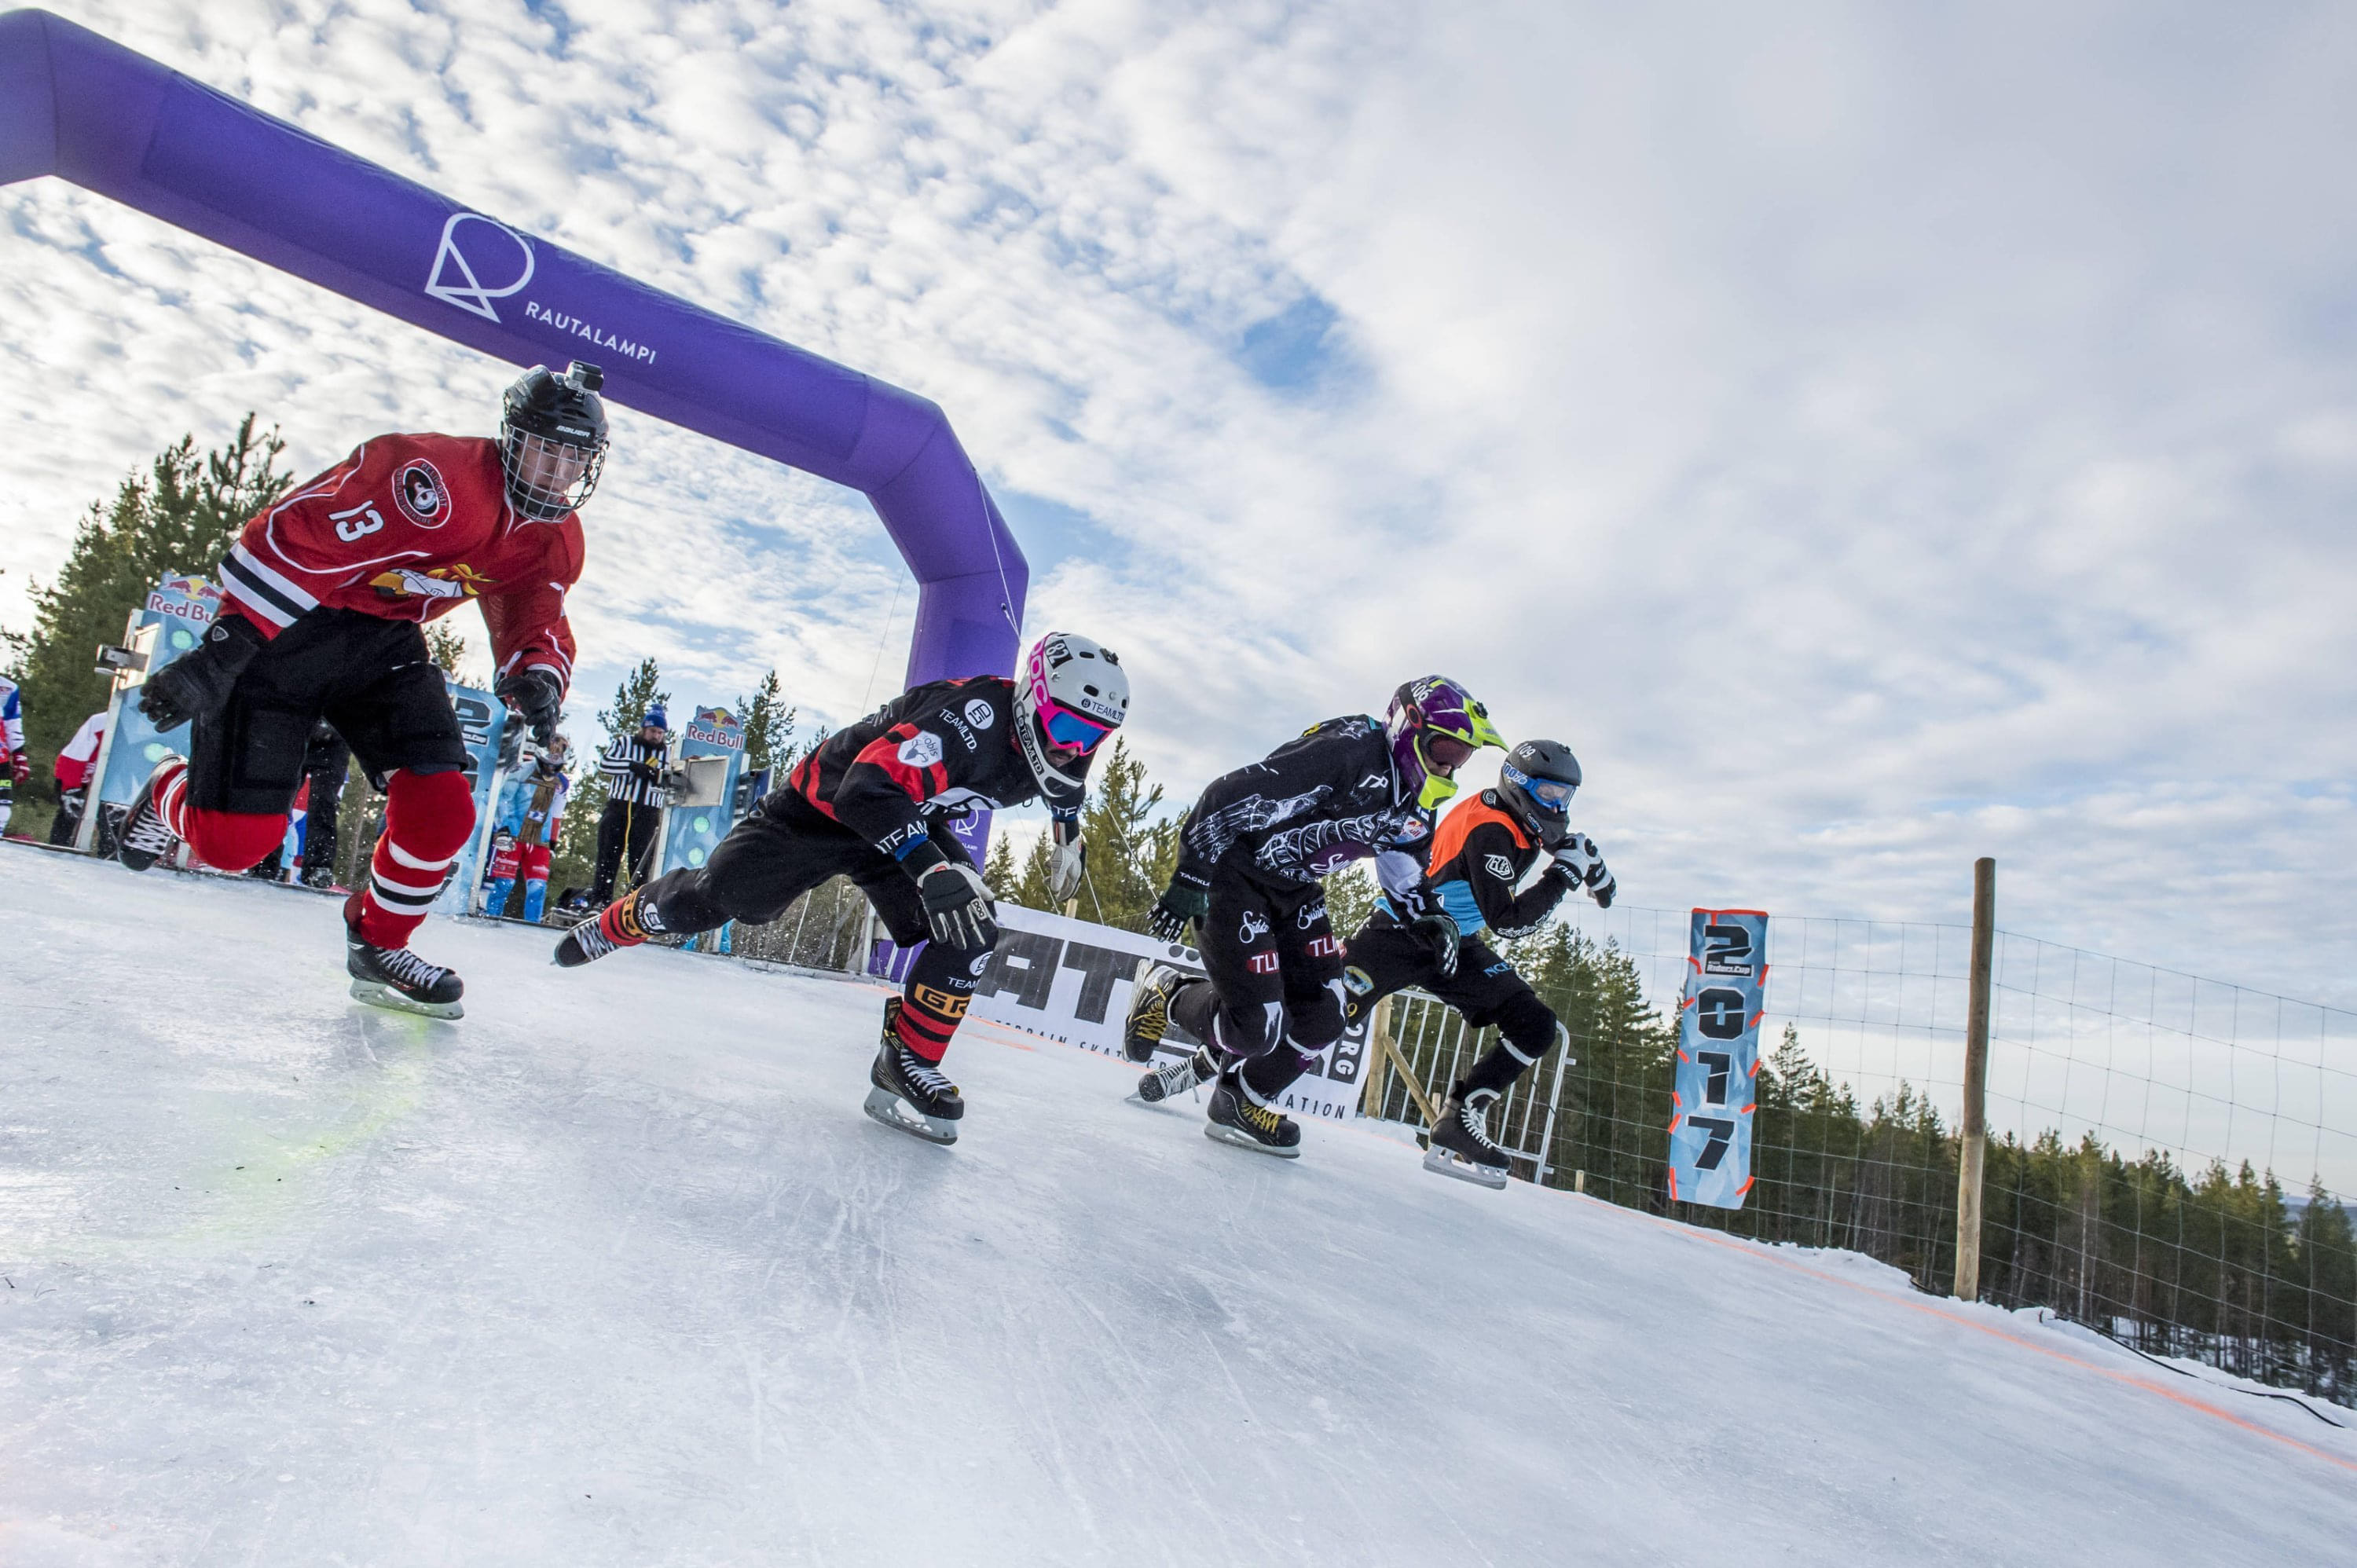 Competitors are looking forward to the Rautalampi event this weekend. Image: Mark Roe / Red Bull Content Pool